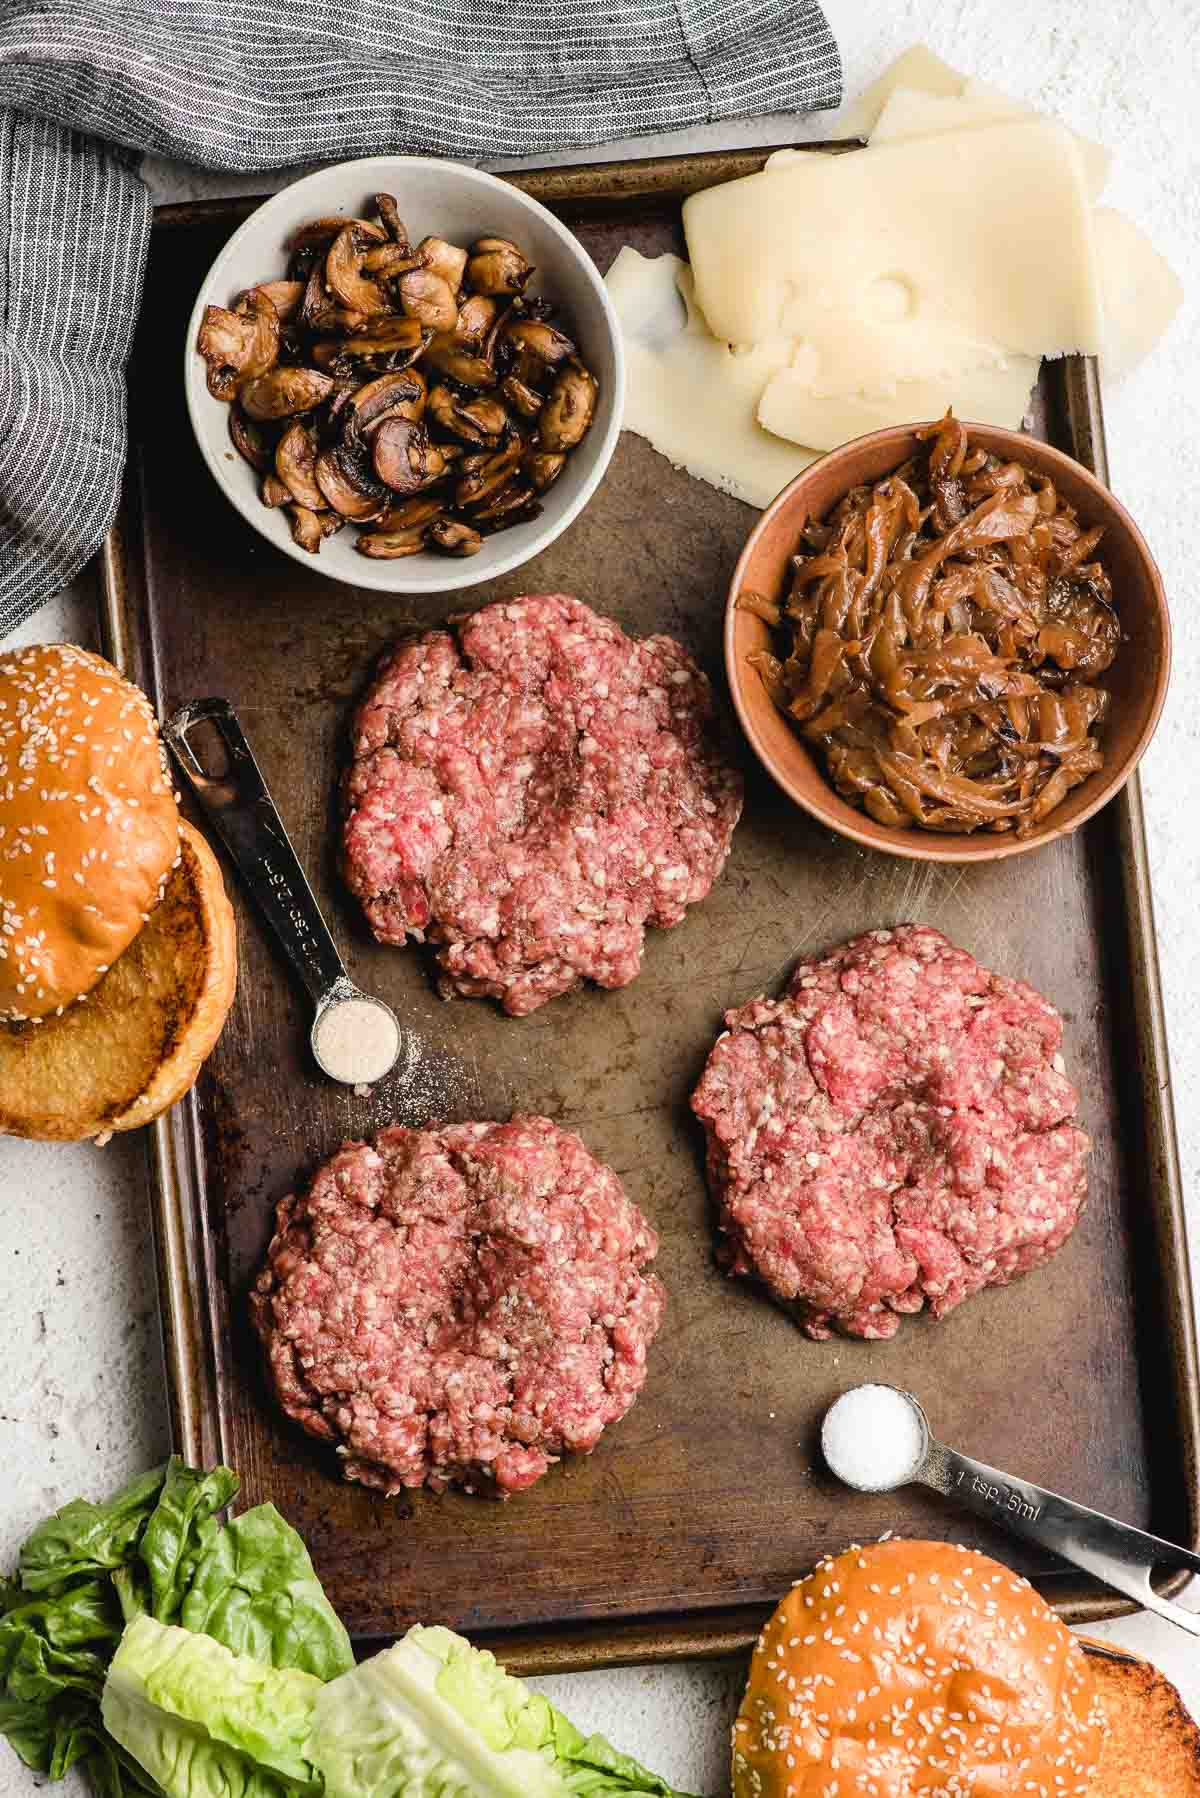 Ingredients for mushroom swiss burgers on a sheet pan. Includes the raw burger patties, plus bowls of sauteed mushrooms and carmalized onions, cheese slices, and buns.